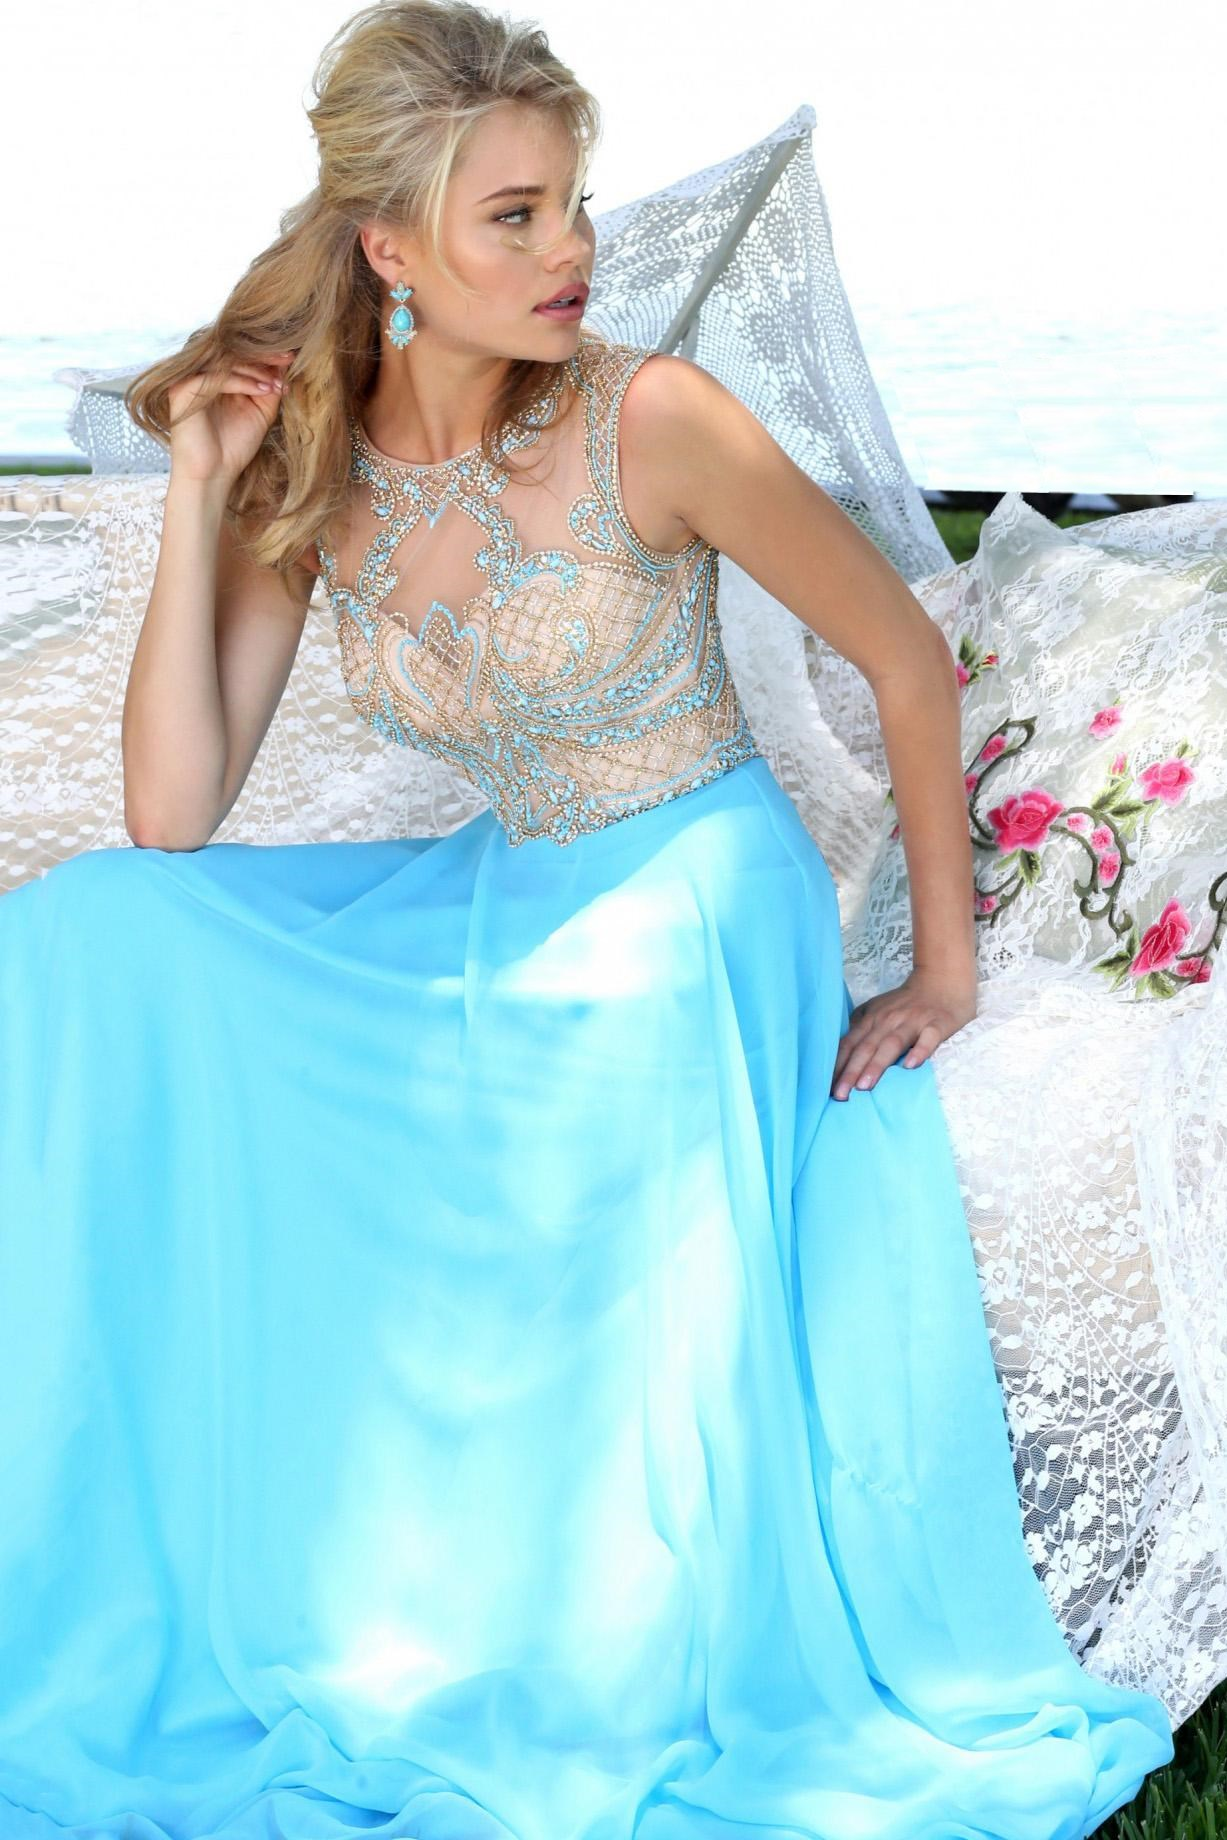 Backless Crystallized Chiffon Gown Light Blue - Haute on High